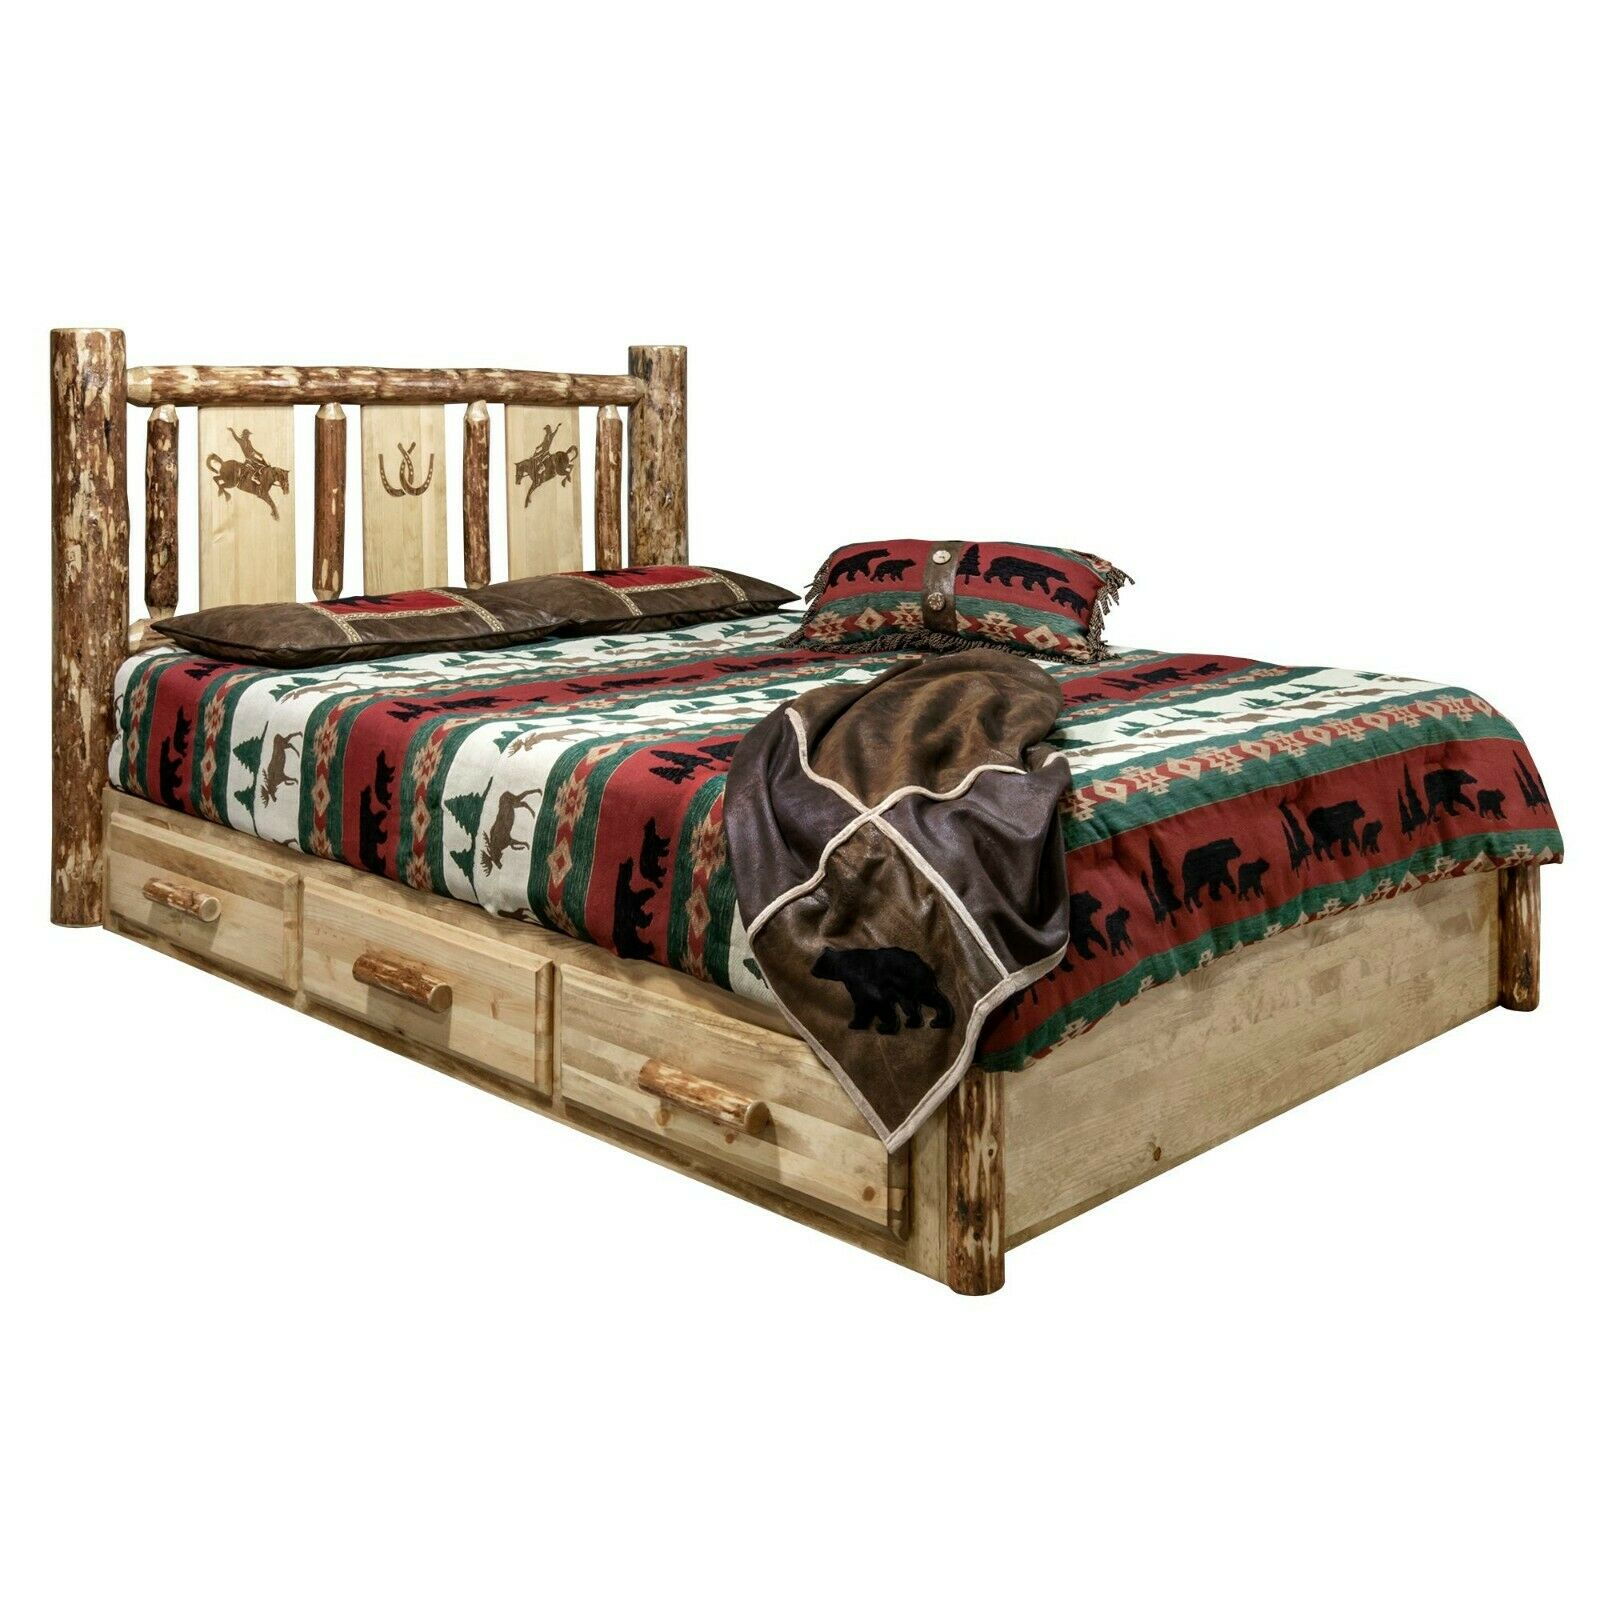 Amish Rustic Pine Queen Unfinished Captain S Storage Platform Bed 12 Drawers For Sale Online Ebay